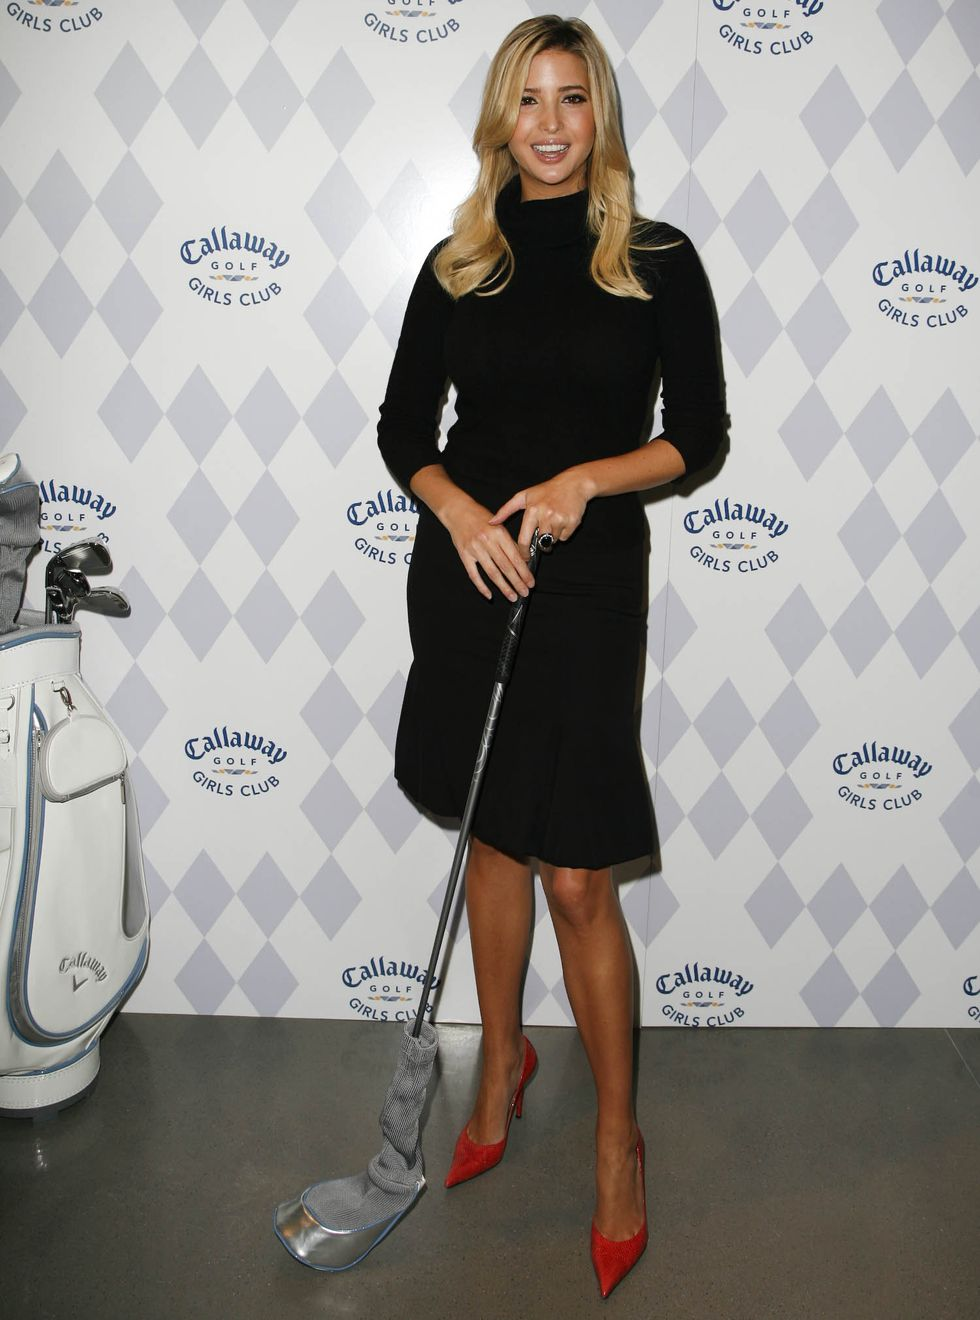 ivanka-trump-hosts-callaway-golf-girls-club-01